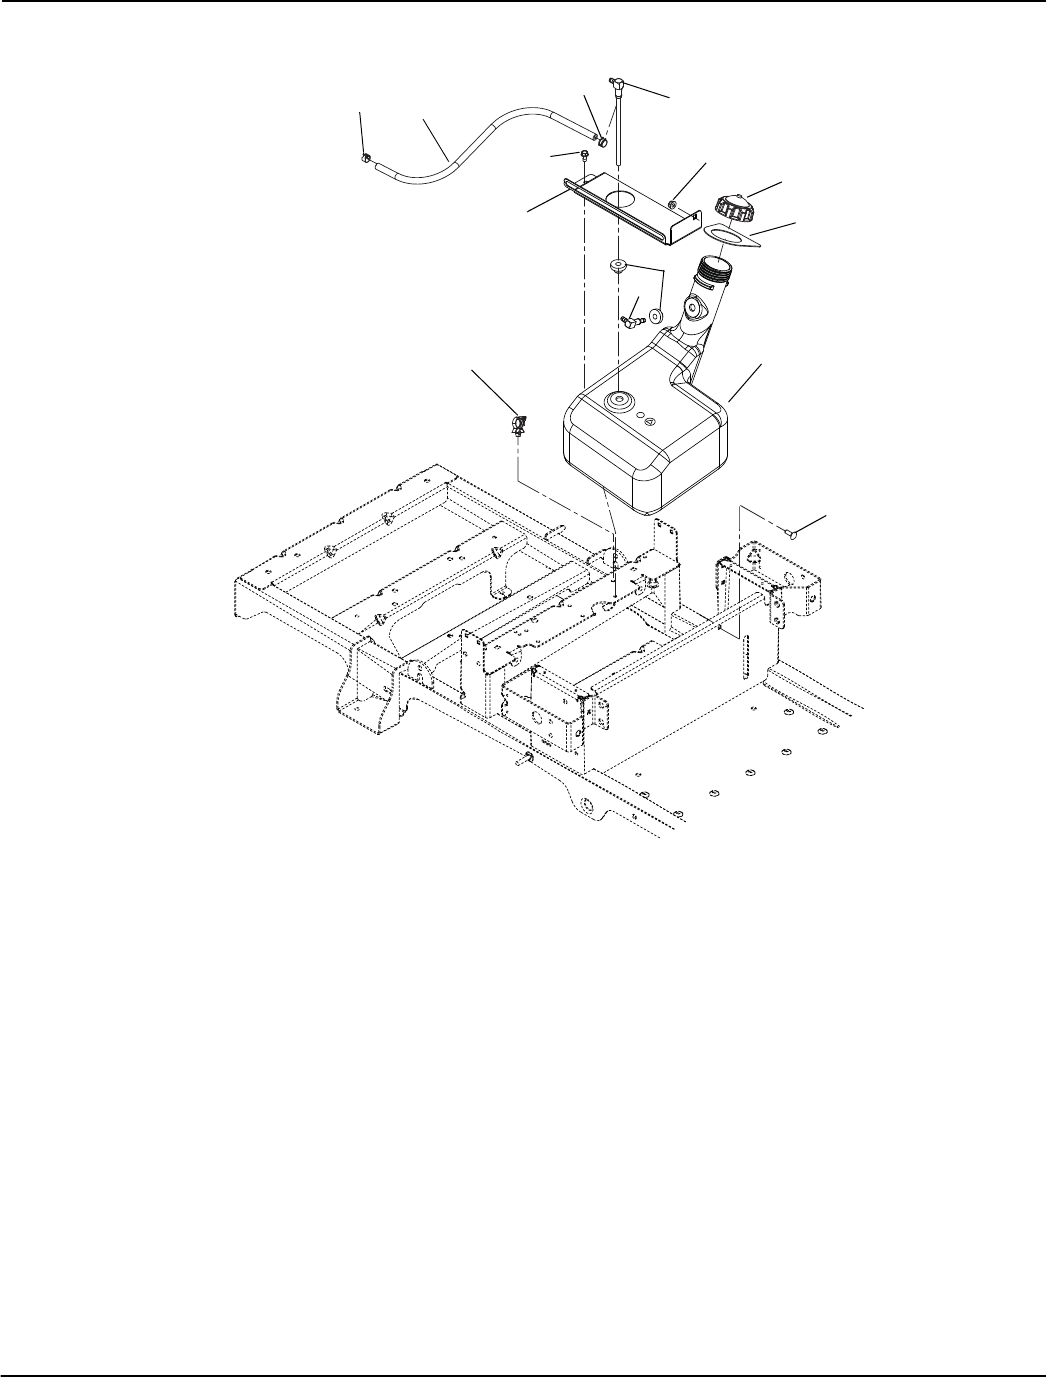 Page 22 of Gravely Lawn Mower 4699300 7/15 User Guide